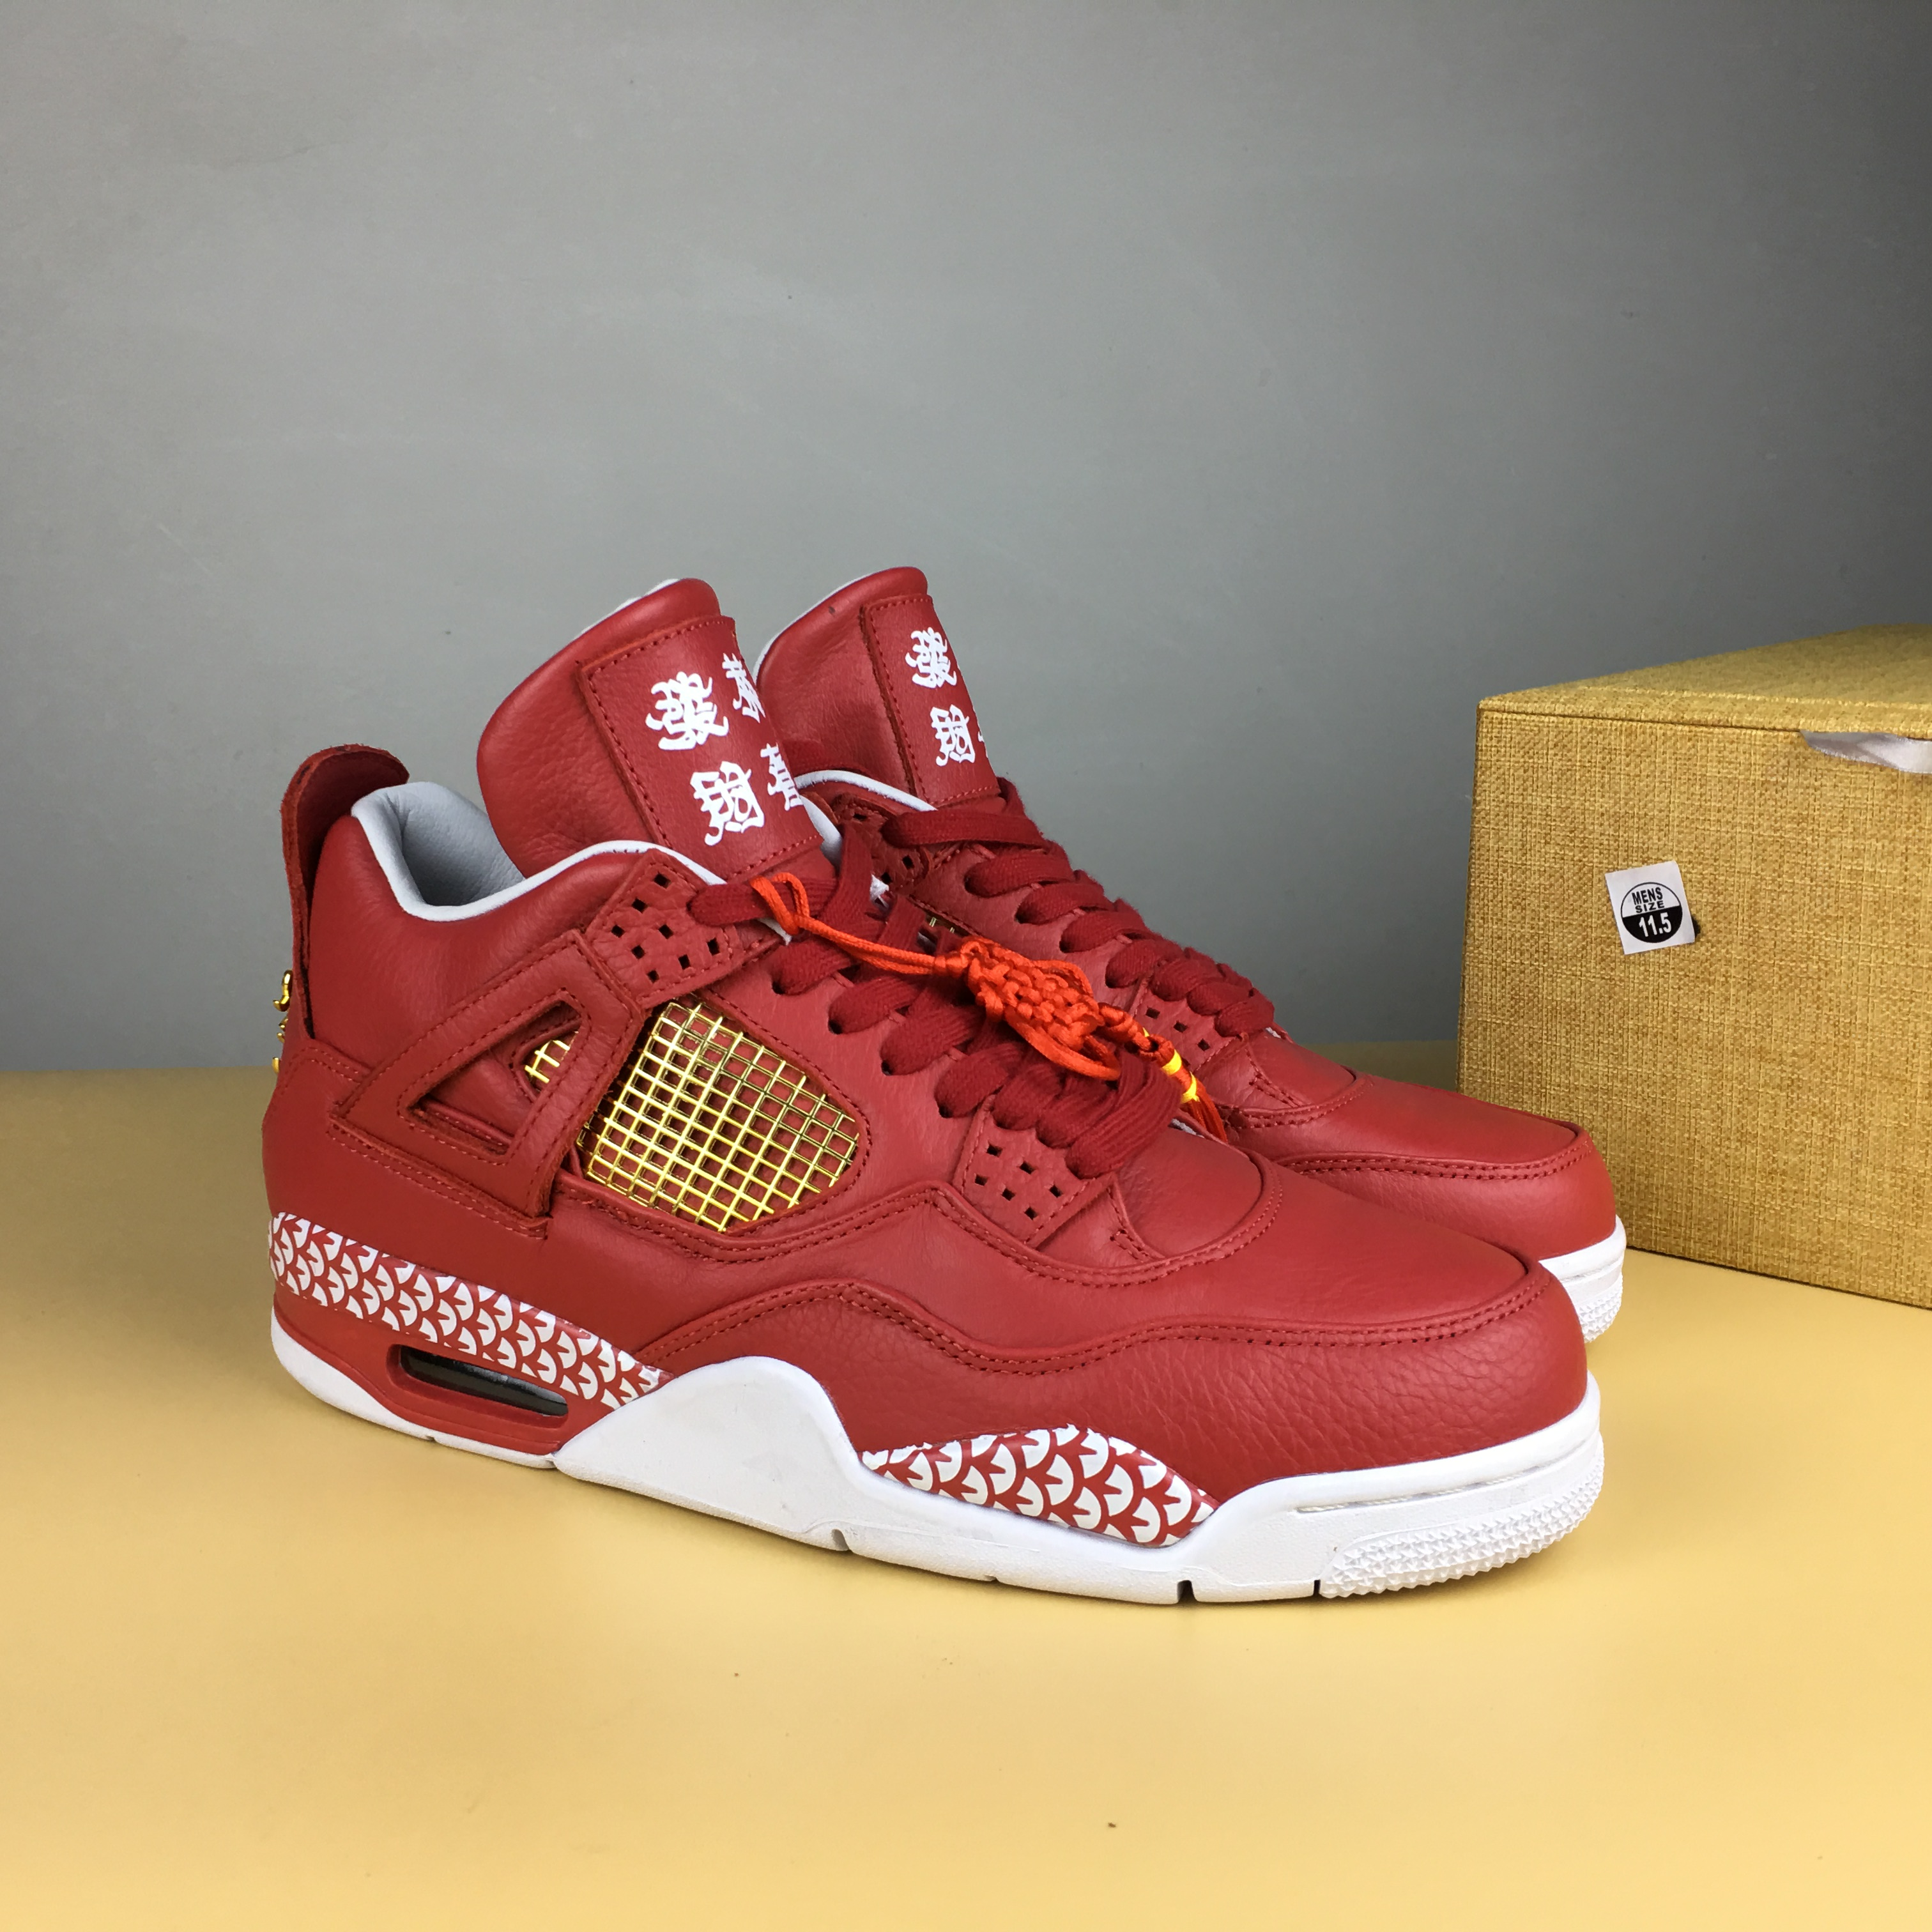 New Air Jordan 4 Kung Hei Fat Choi Red Shoes